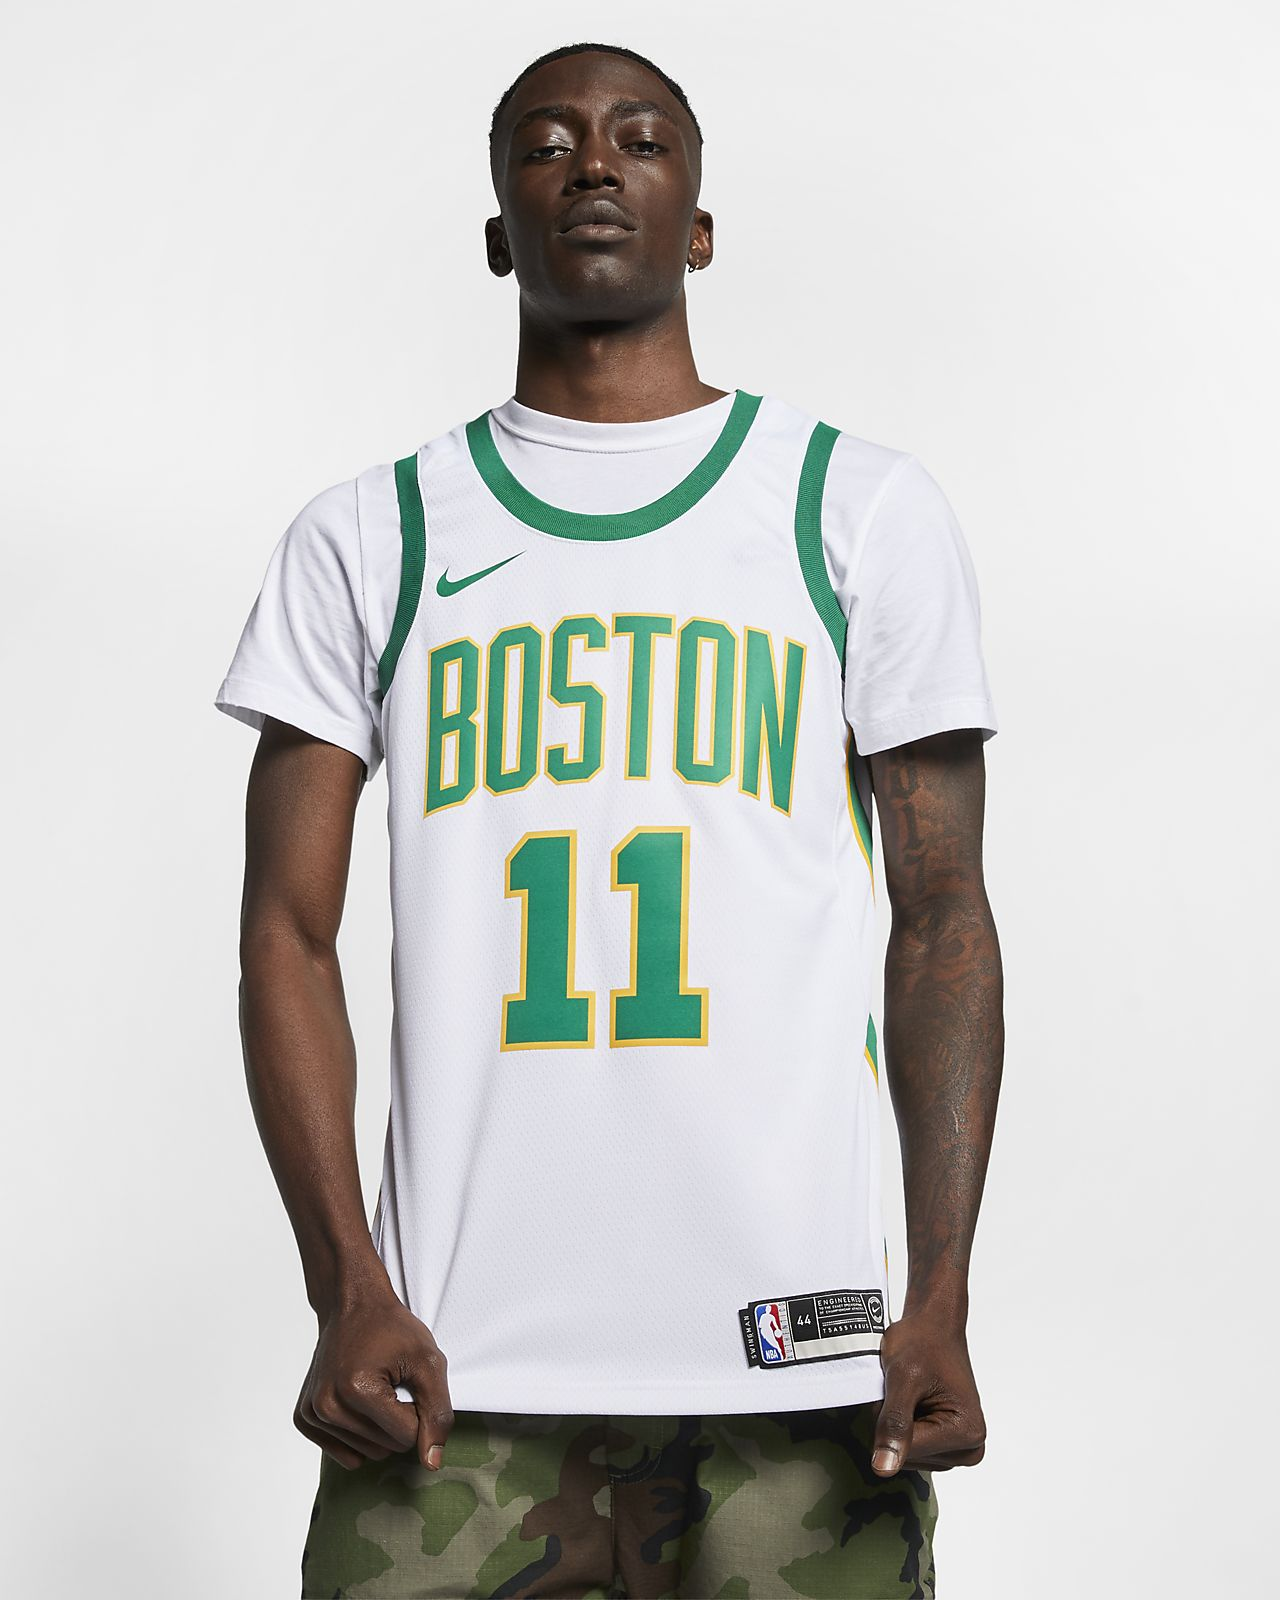 44d1c4387 Men s Nike NBA Connected Jersey. Kyrie Irving City Edition Swingman (Boston  Celtics)